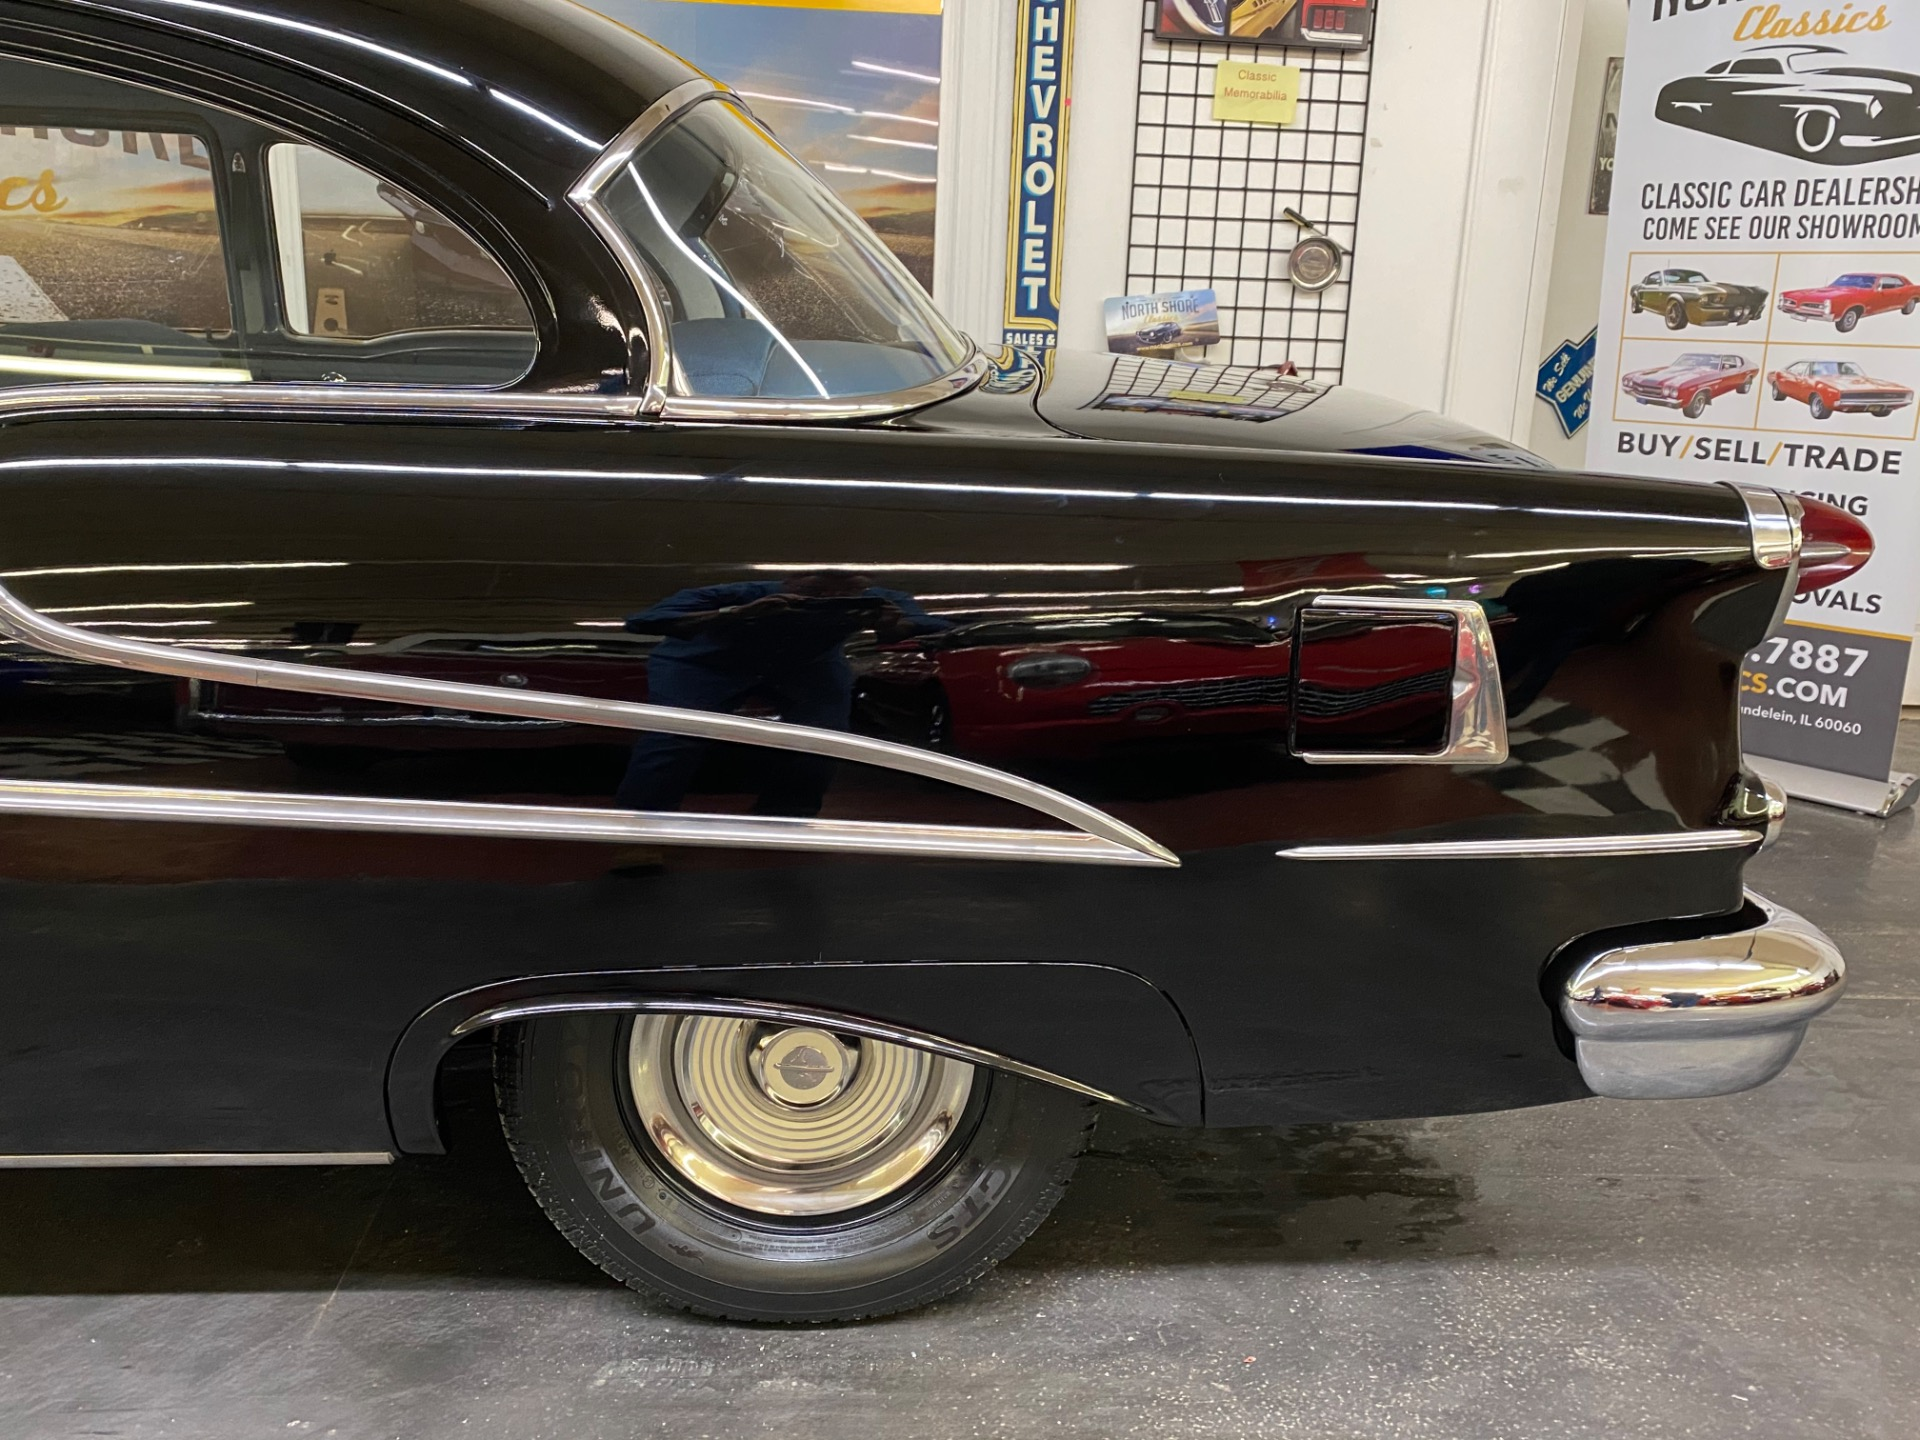 Used 1955 Oldsmobile 88 - HIGH QUALITY RESTORATION - 324 V8 - AUTO TRANS - SEE VIDEO | Mundelein, IL